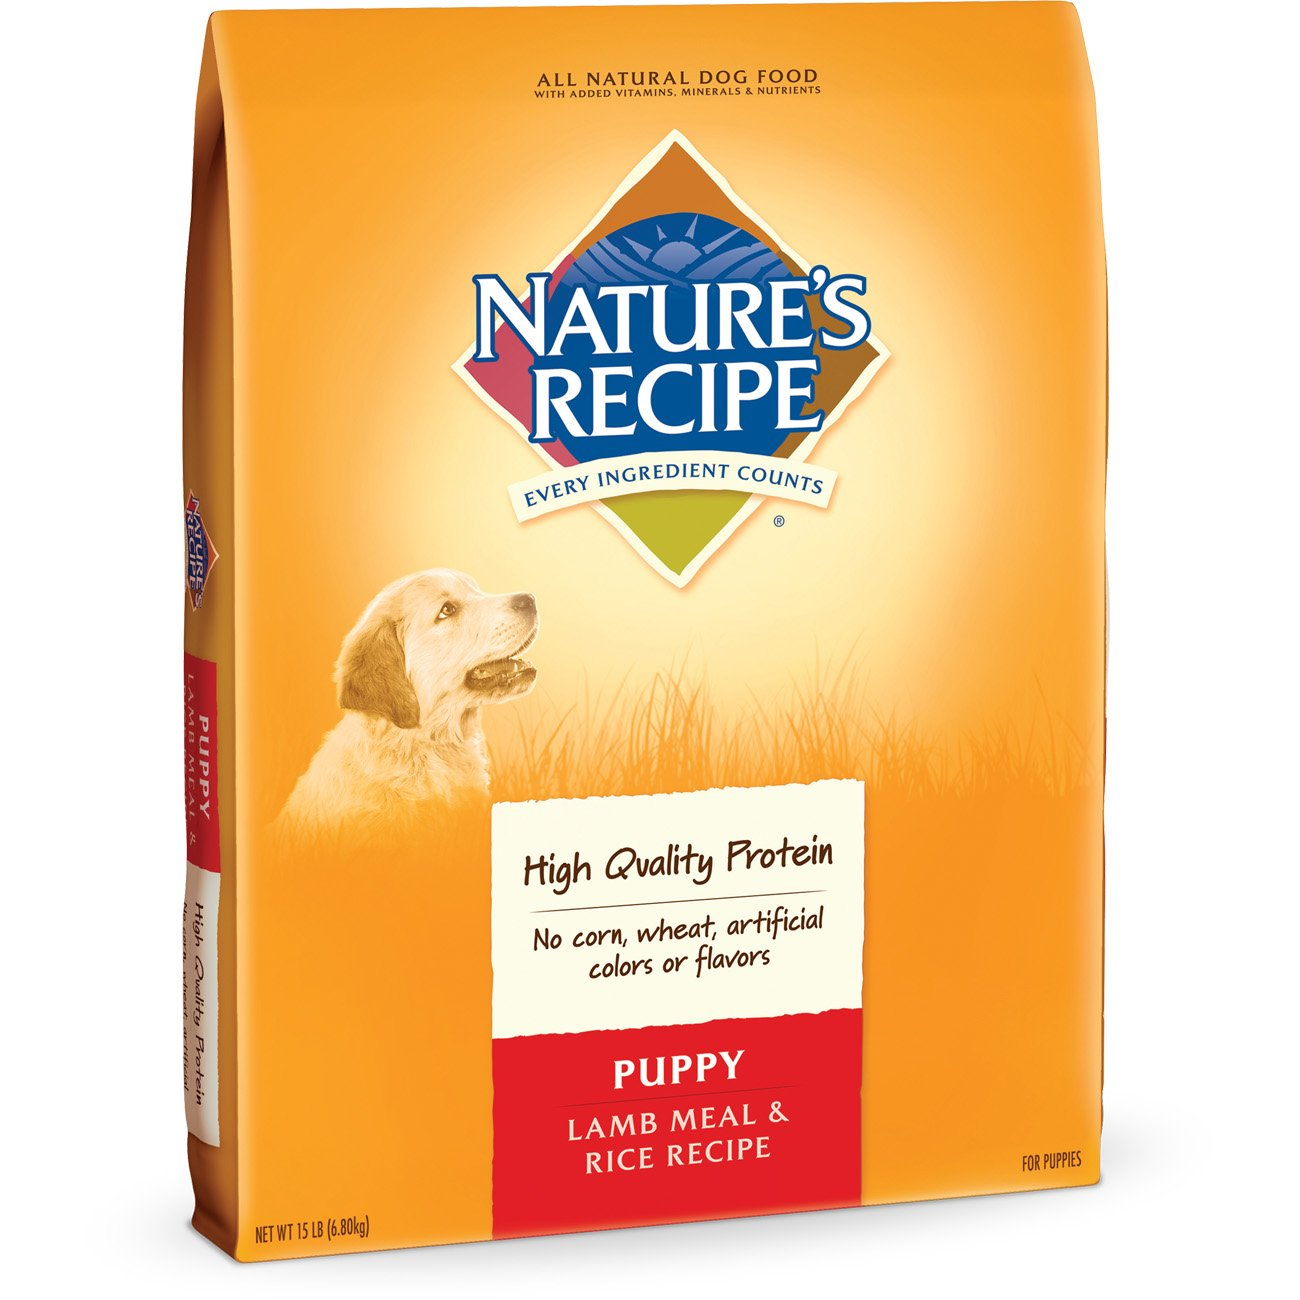 Amazon natures recipe puppy dry dog food lamb meal rice amazon natures recipe puppy dry dog food lamb meal rice recipe 15 pound pet supplies forumfinder Choice Image